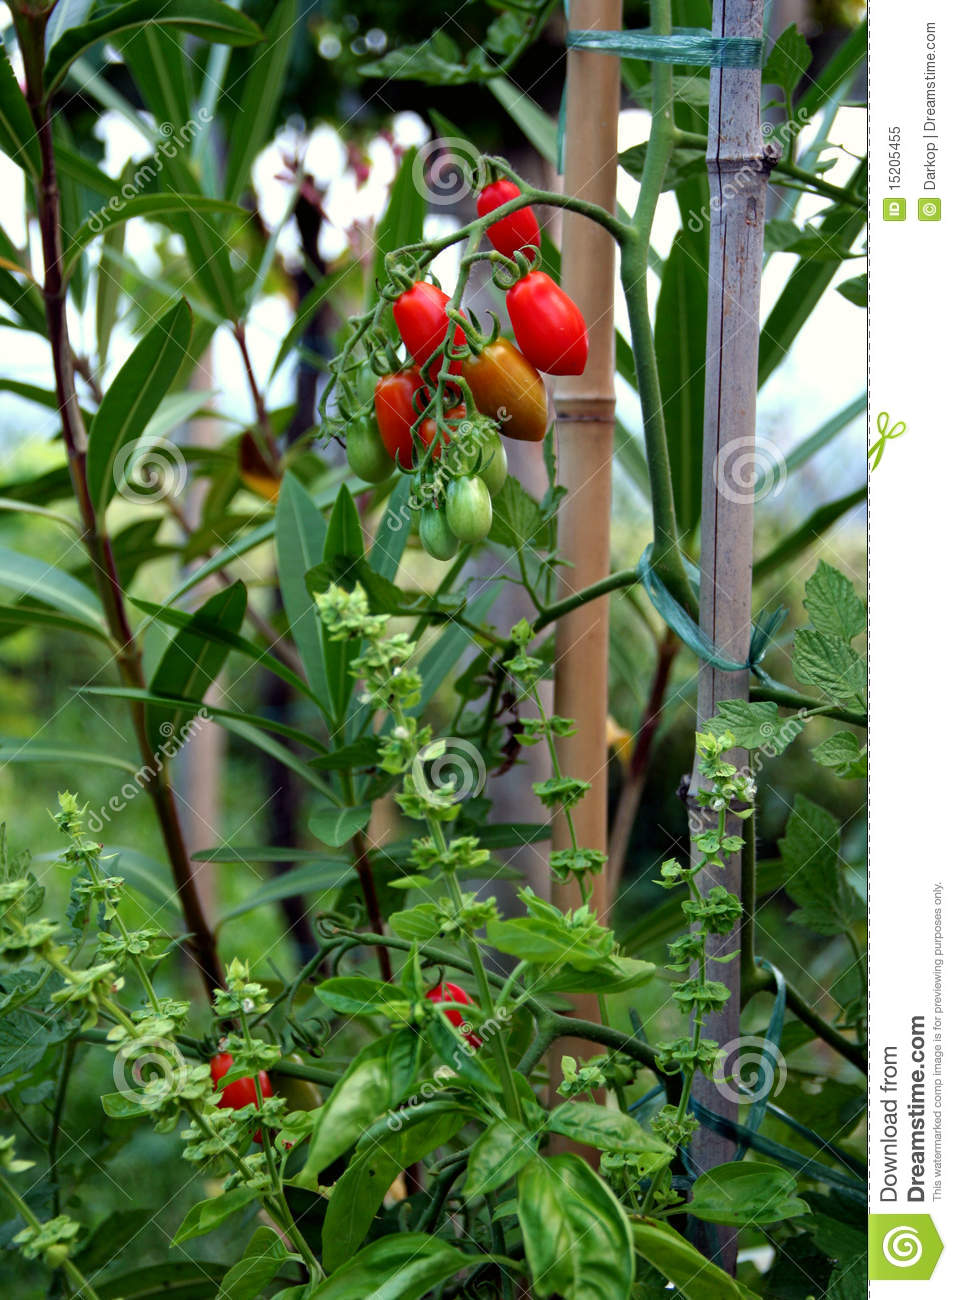 Cherry tomato and basil plant